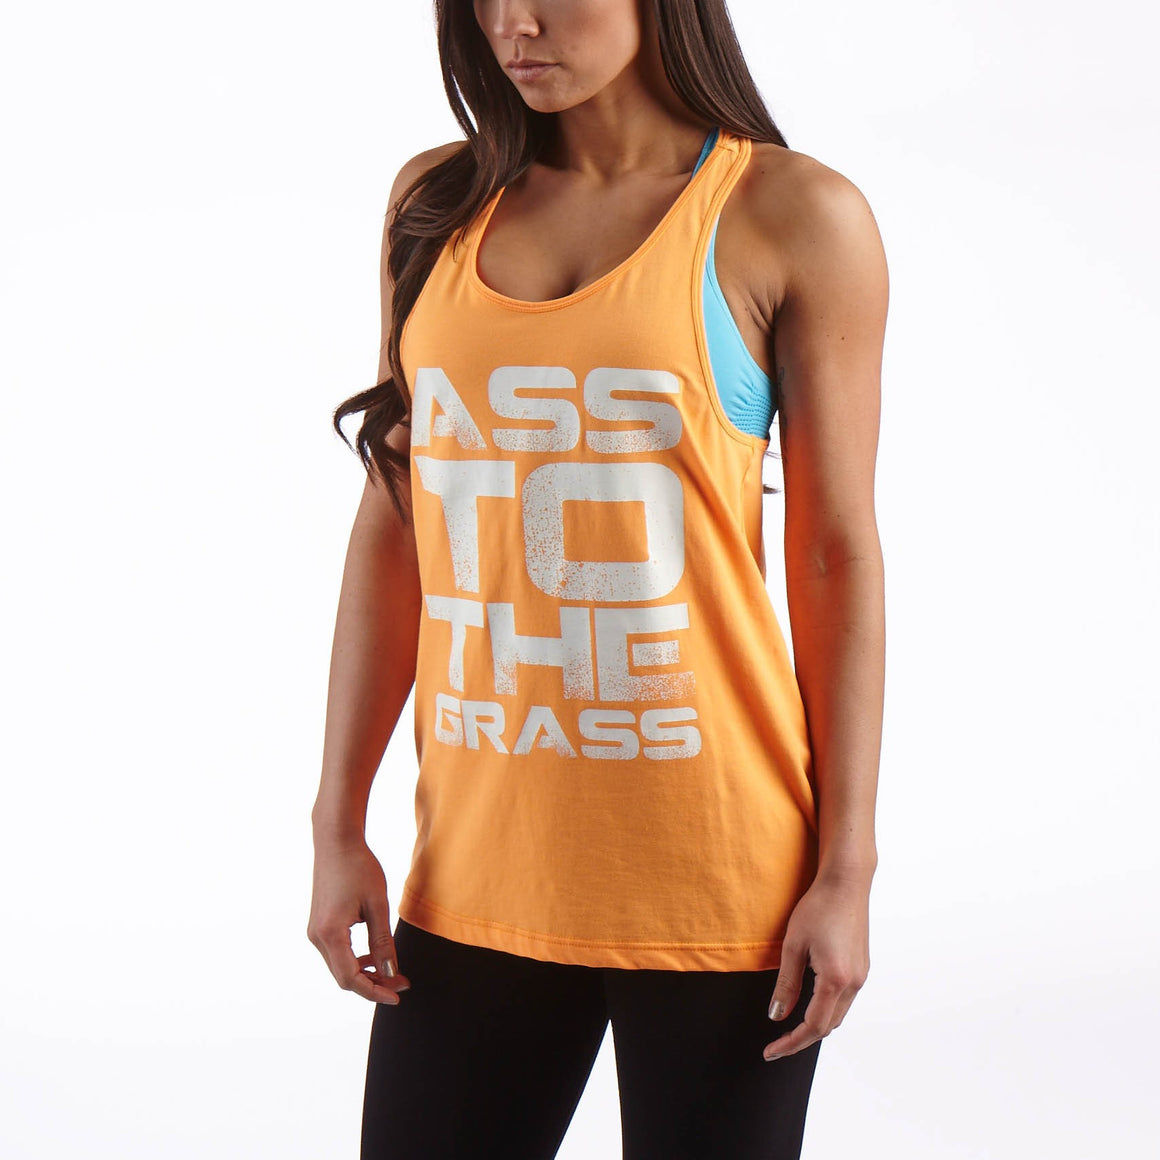 Man Up Slogan Tank Orange/White - Ass To The Grass